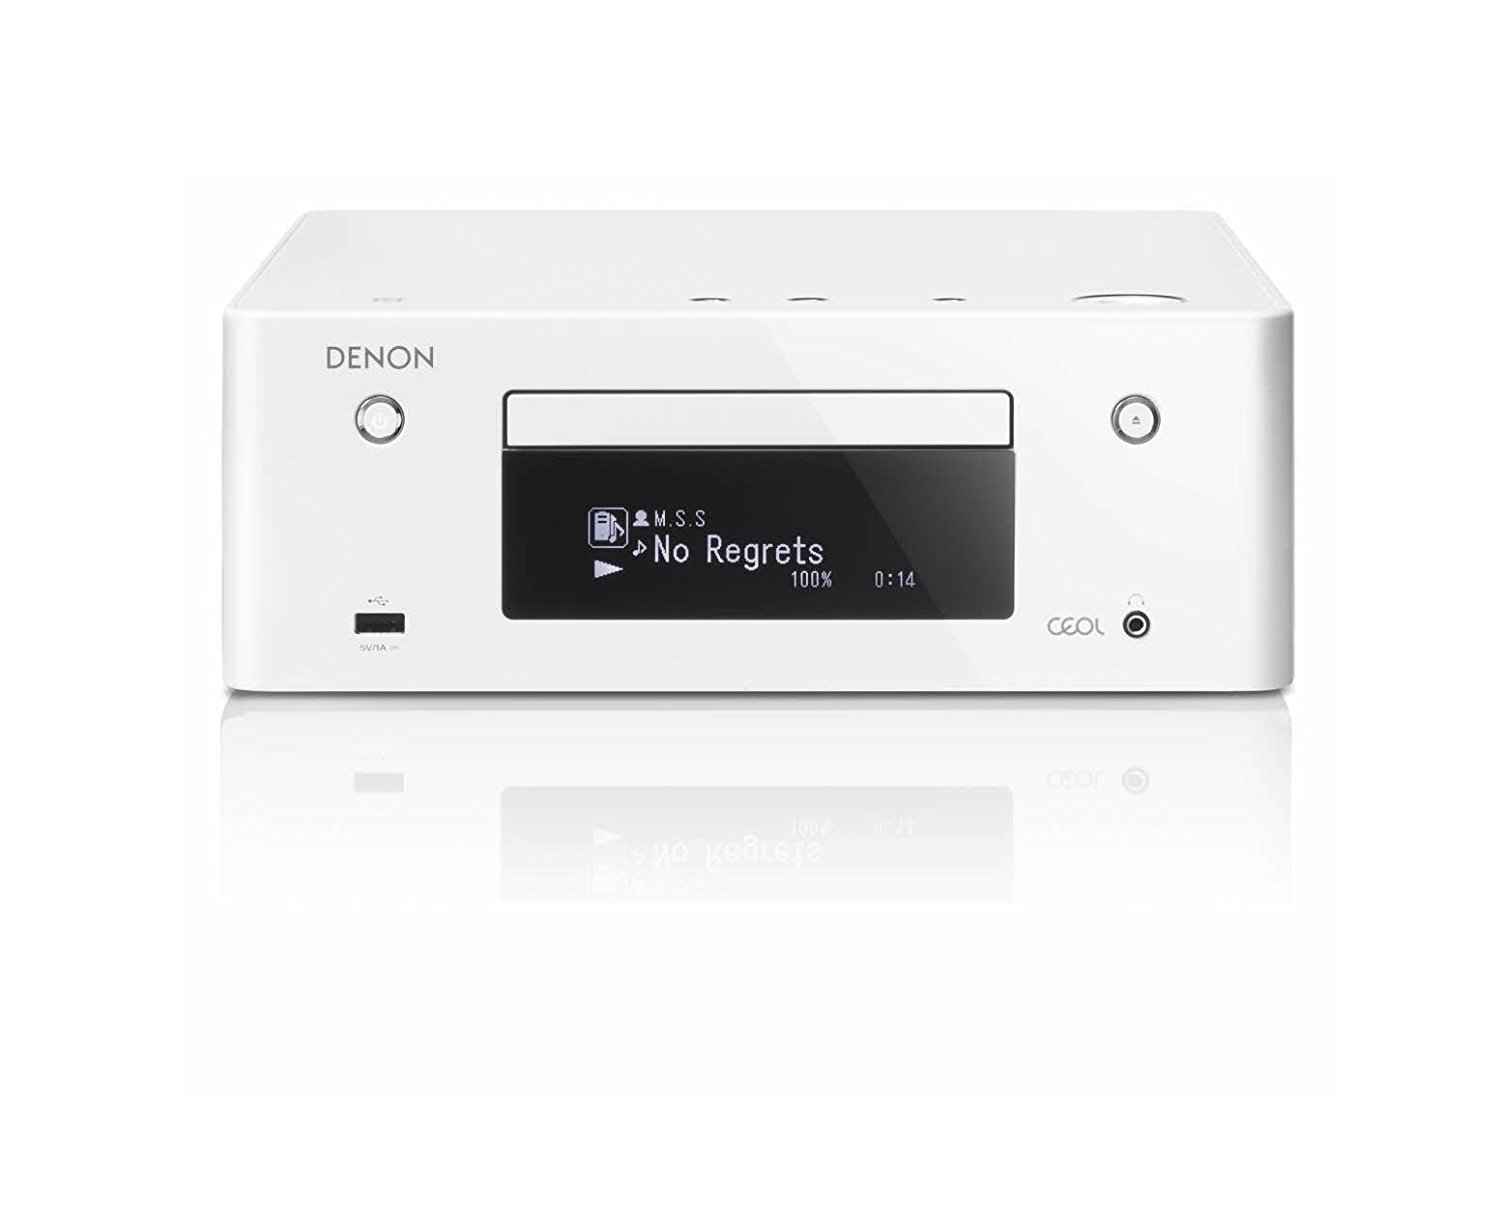 Denon Kompaktreceiver amazon